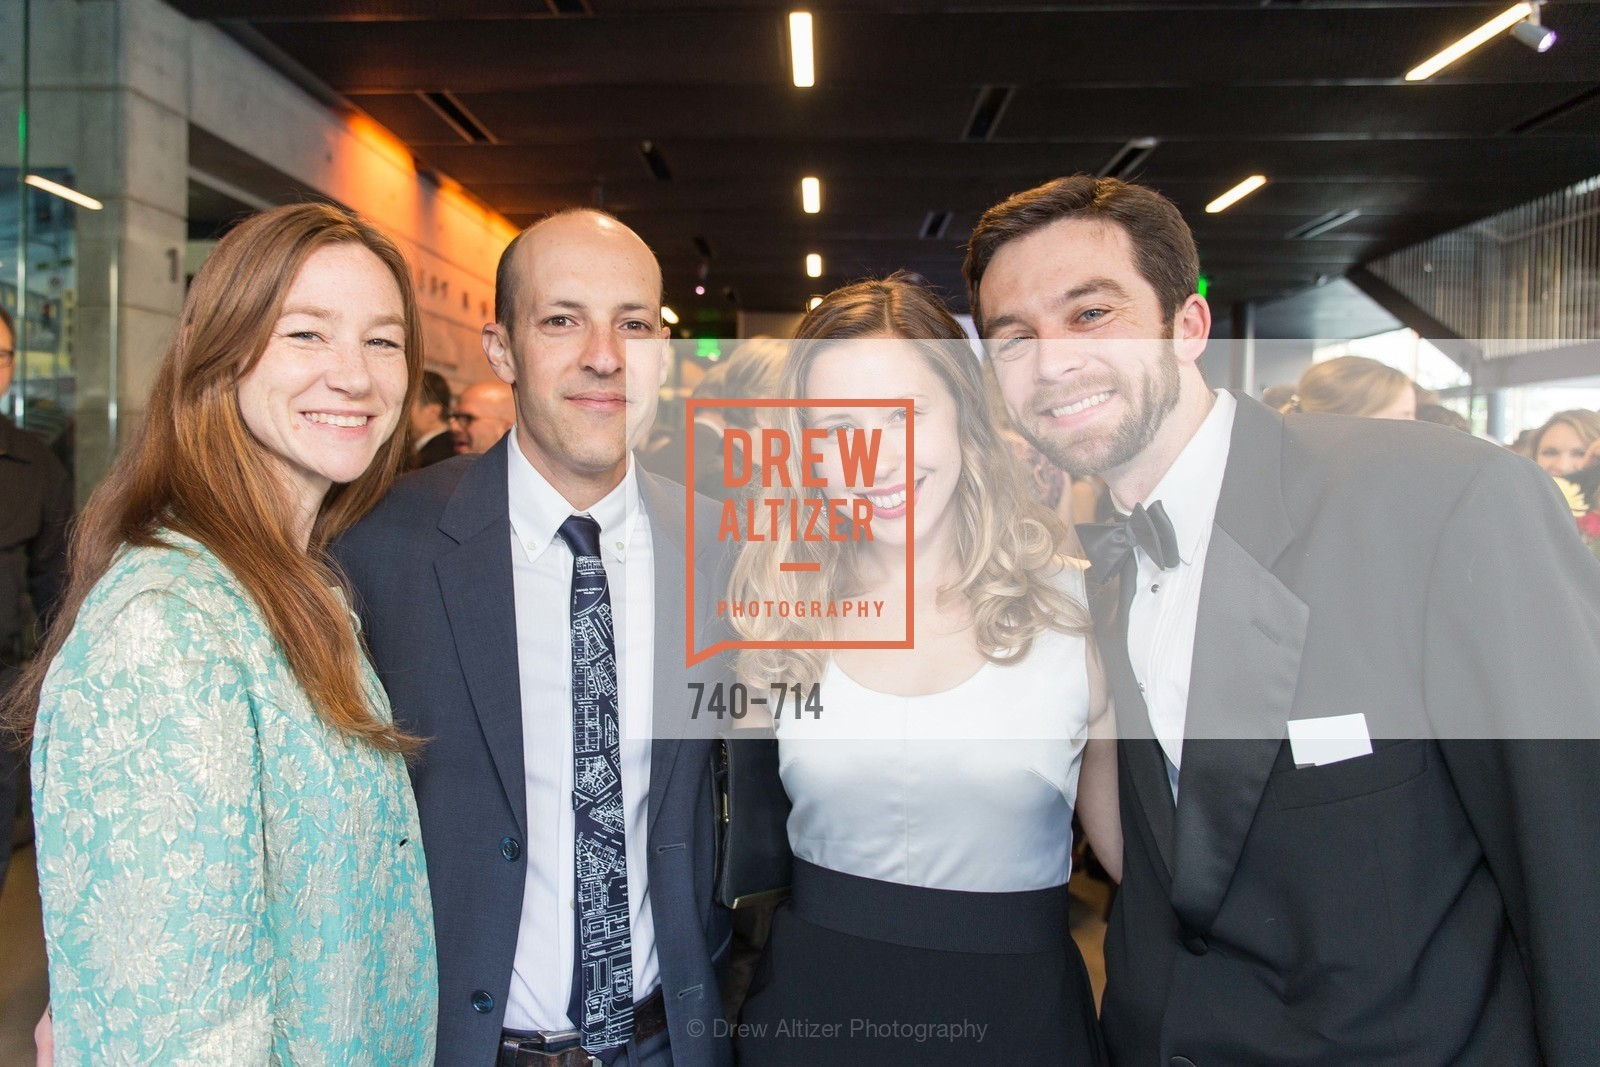 Extras, SFJAZZ Gala 2015 Honors Joni Mitchell with Lifetime Achievement Award, May 8th, 2015, Photo,Drew Altizer, Drew Altizer Photography, full-service agency, private events, San Francisco photographer, photographer california